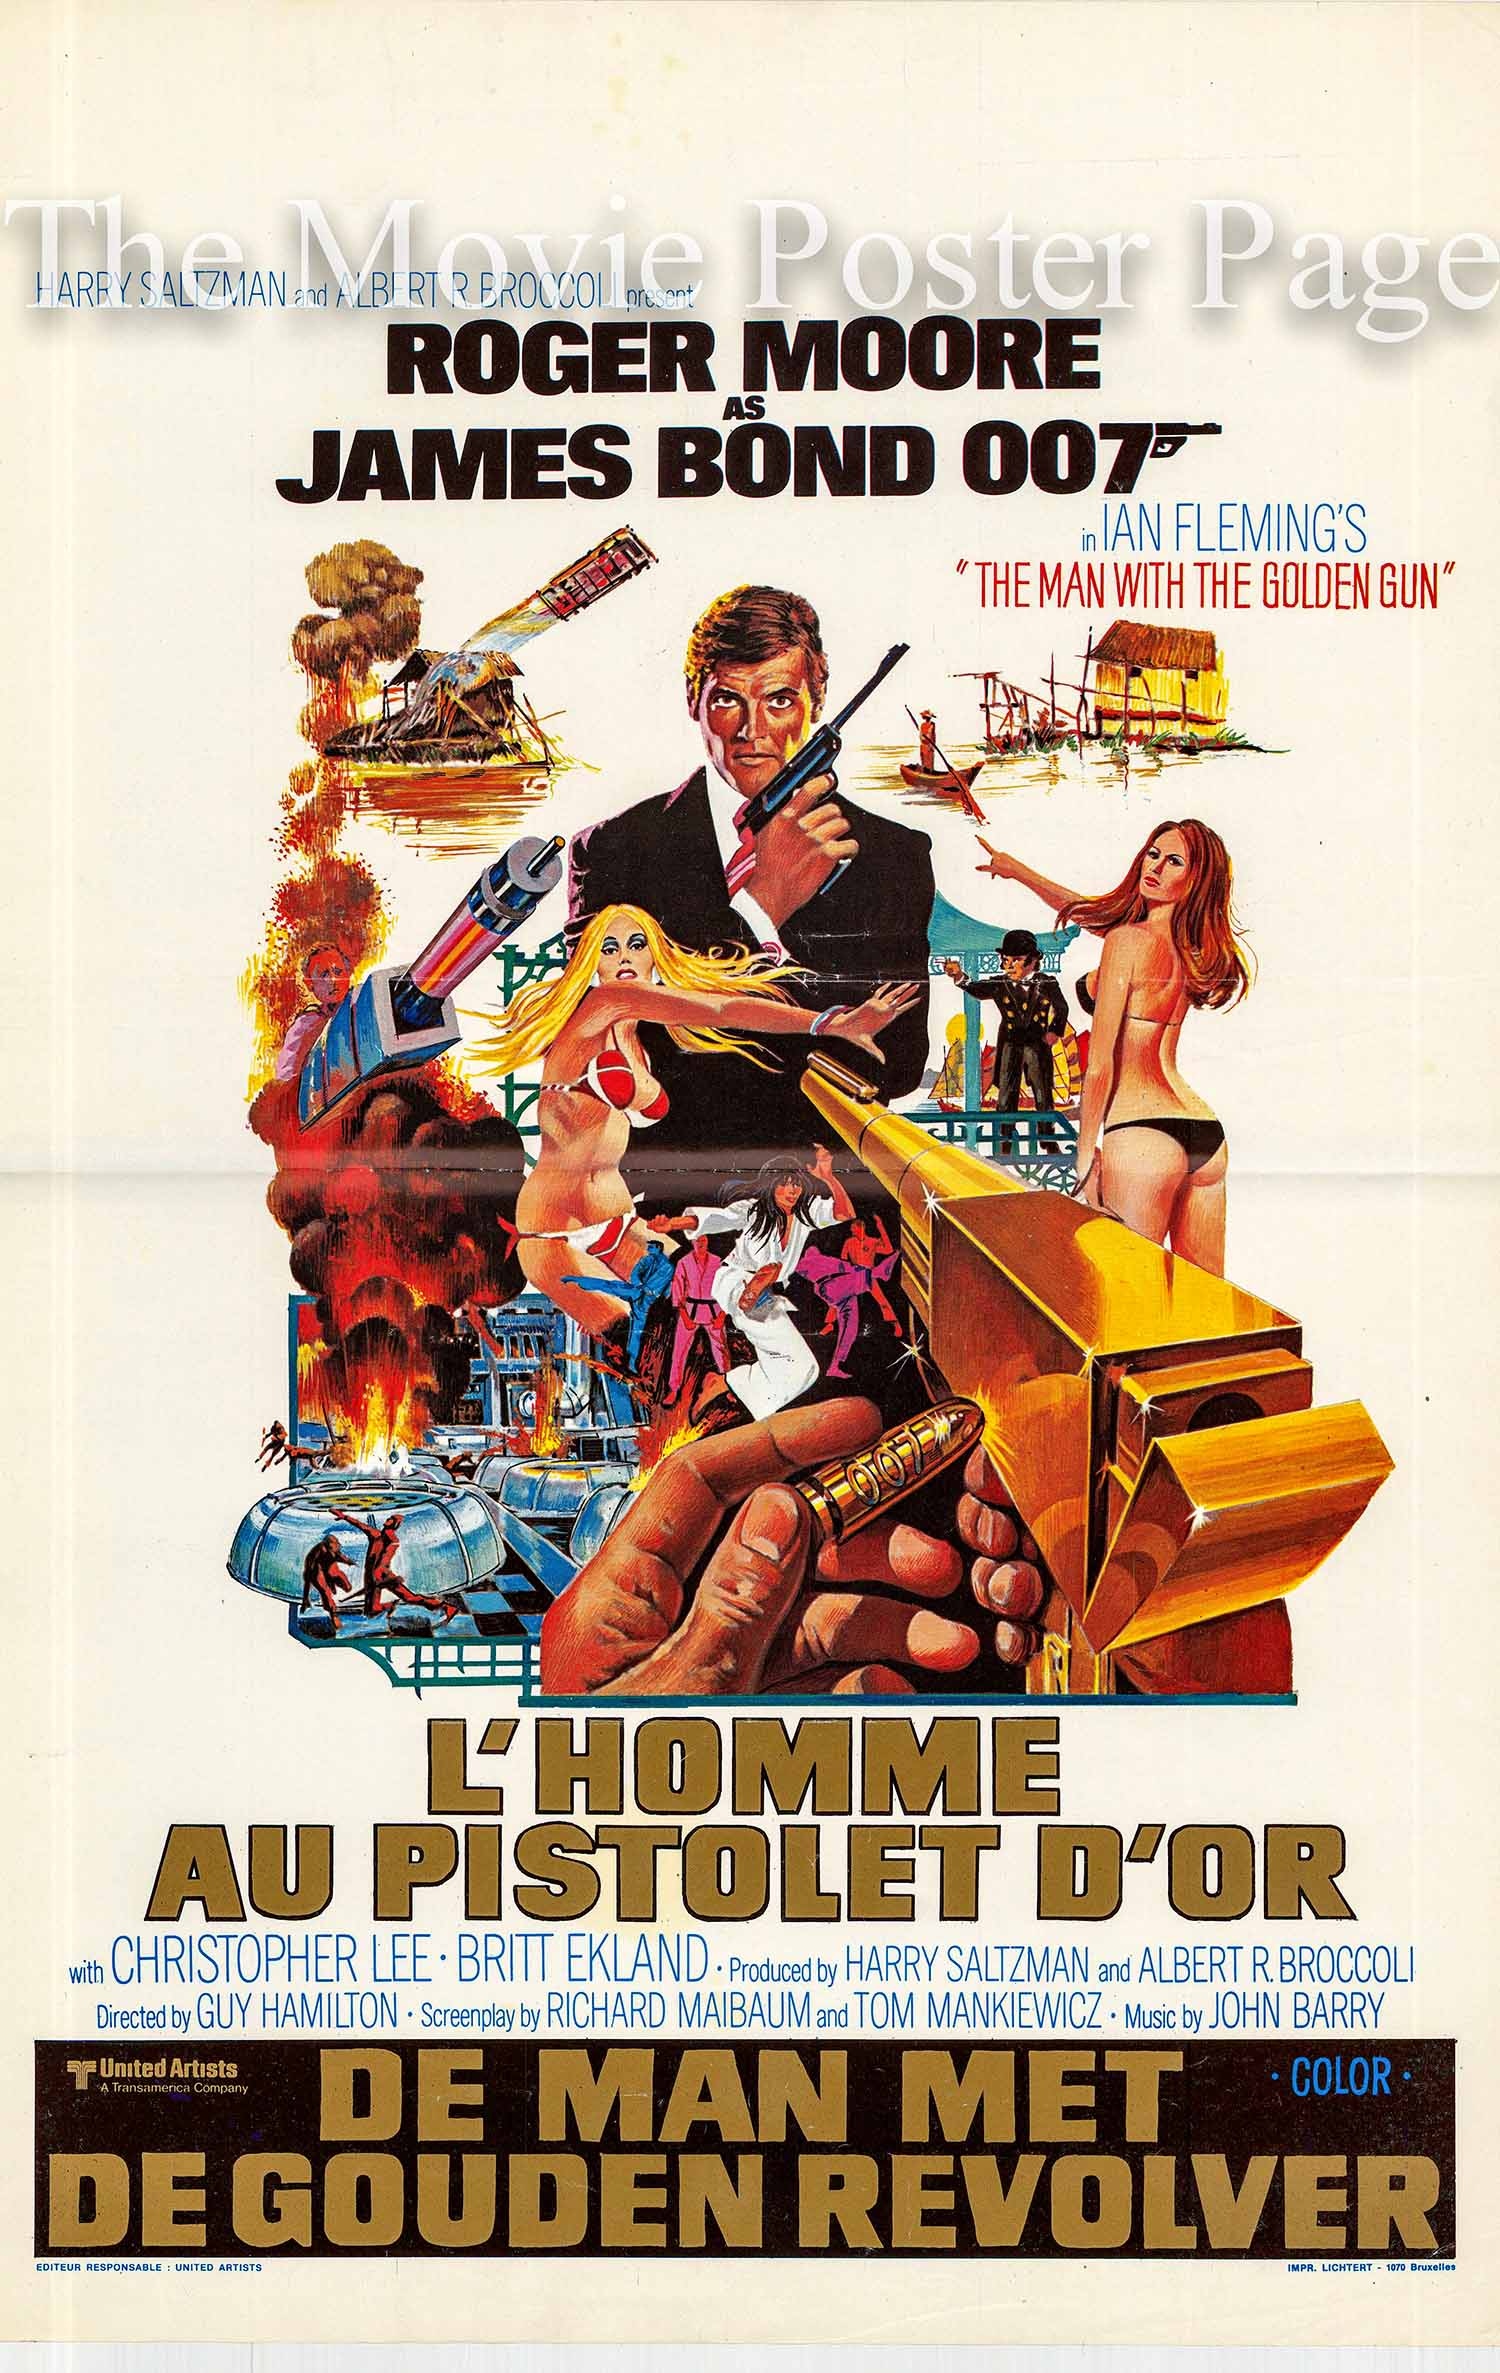 Pictured is a Belgian promotional poster made for the 1974 Guy Hamilton film The Man with the Golden Gun starring Roger Moore as James Bond.